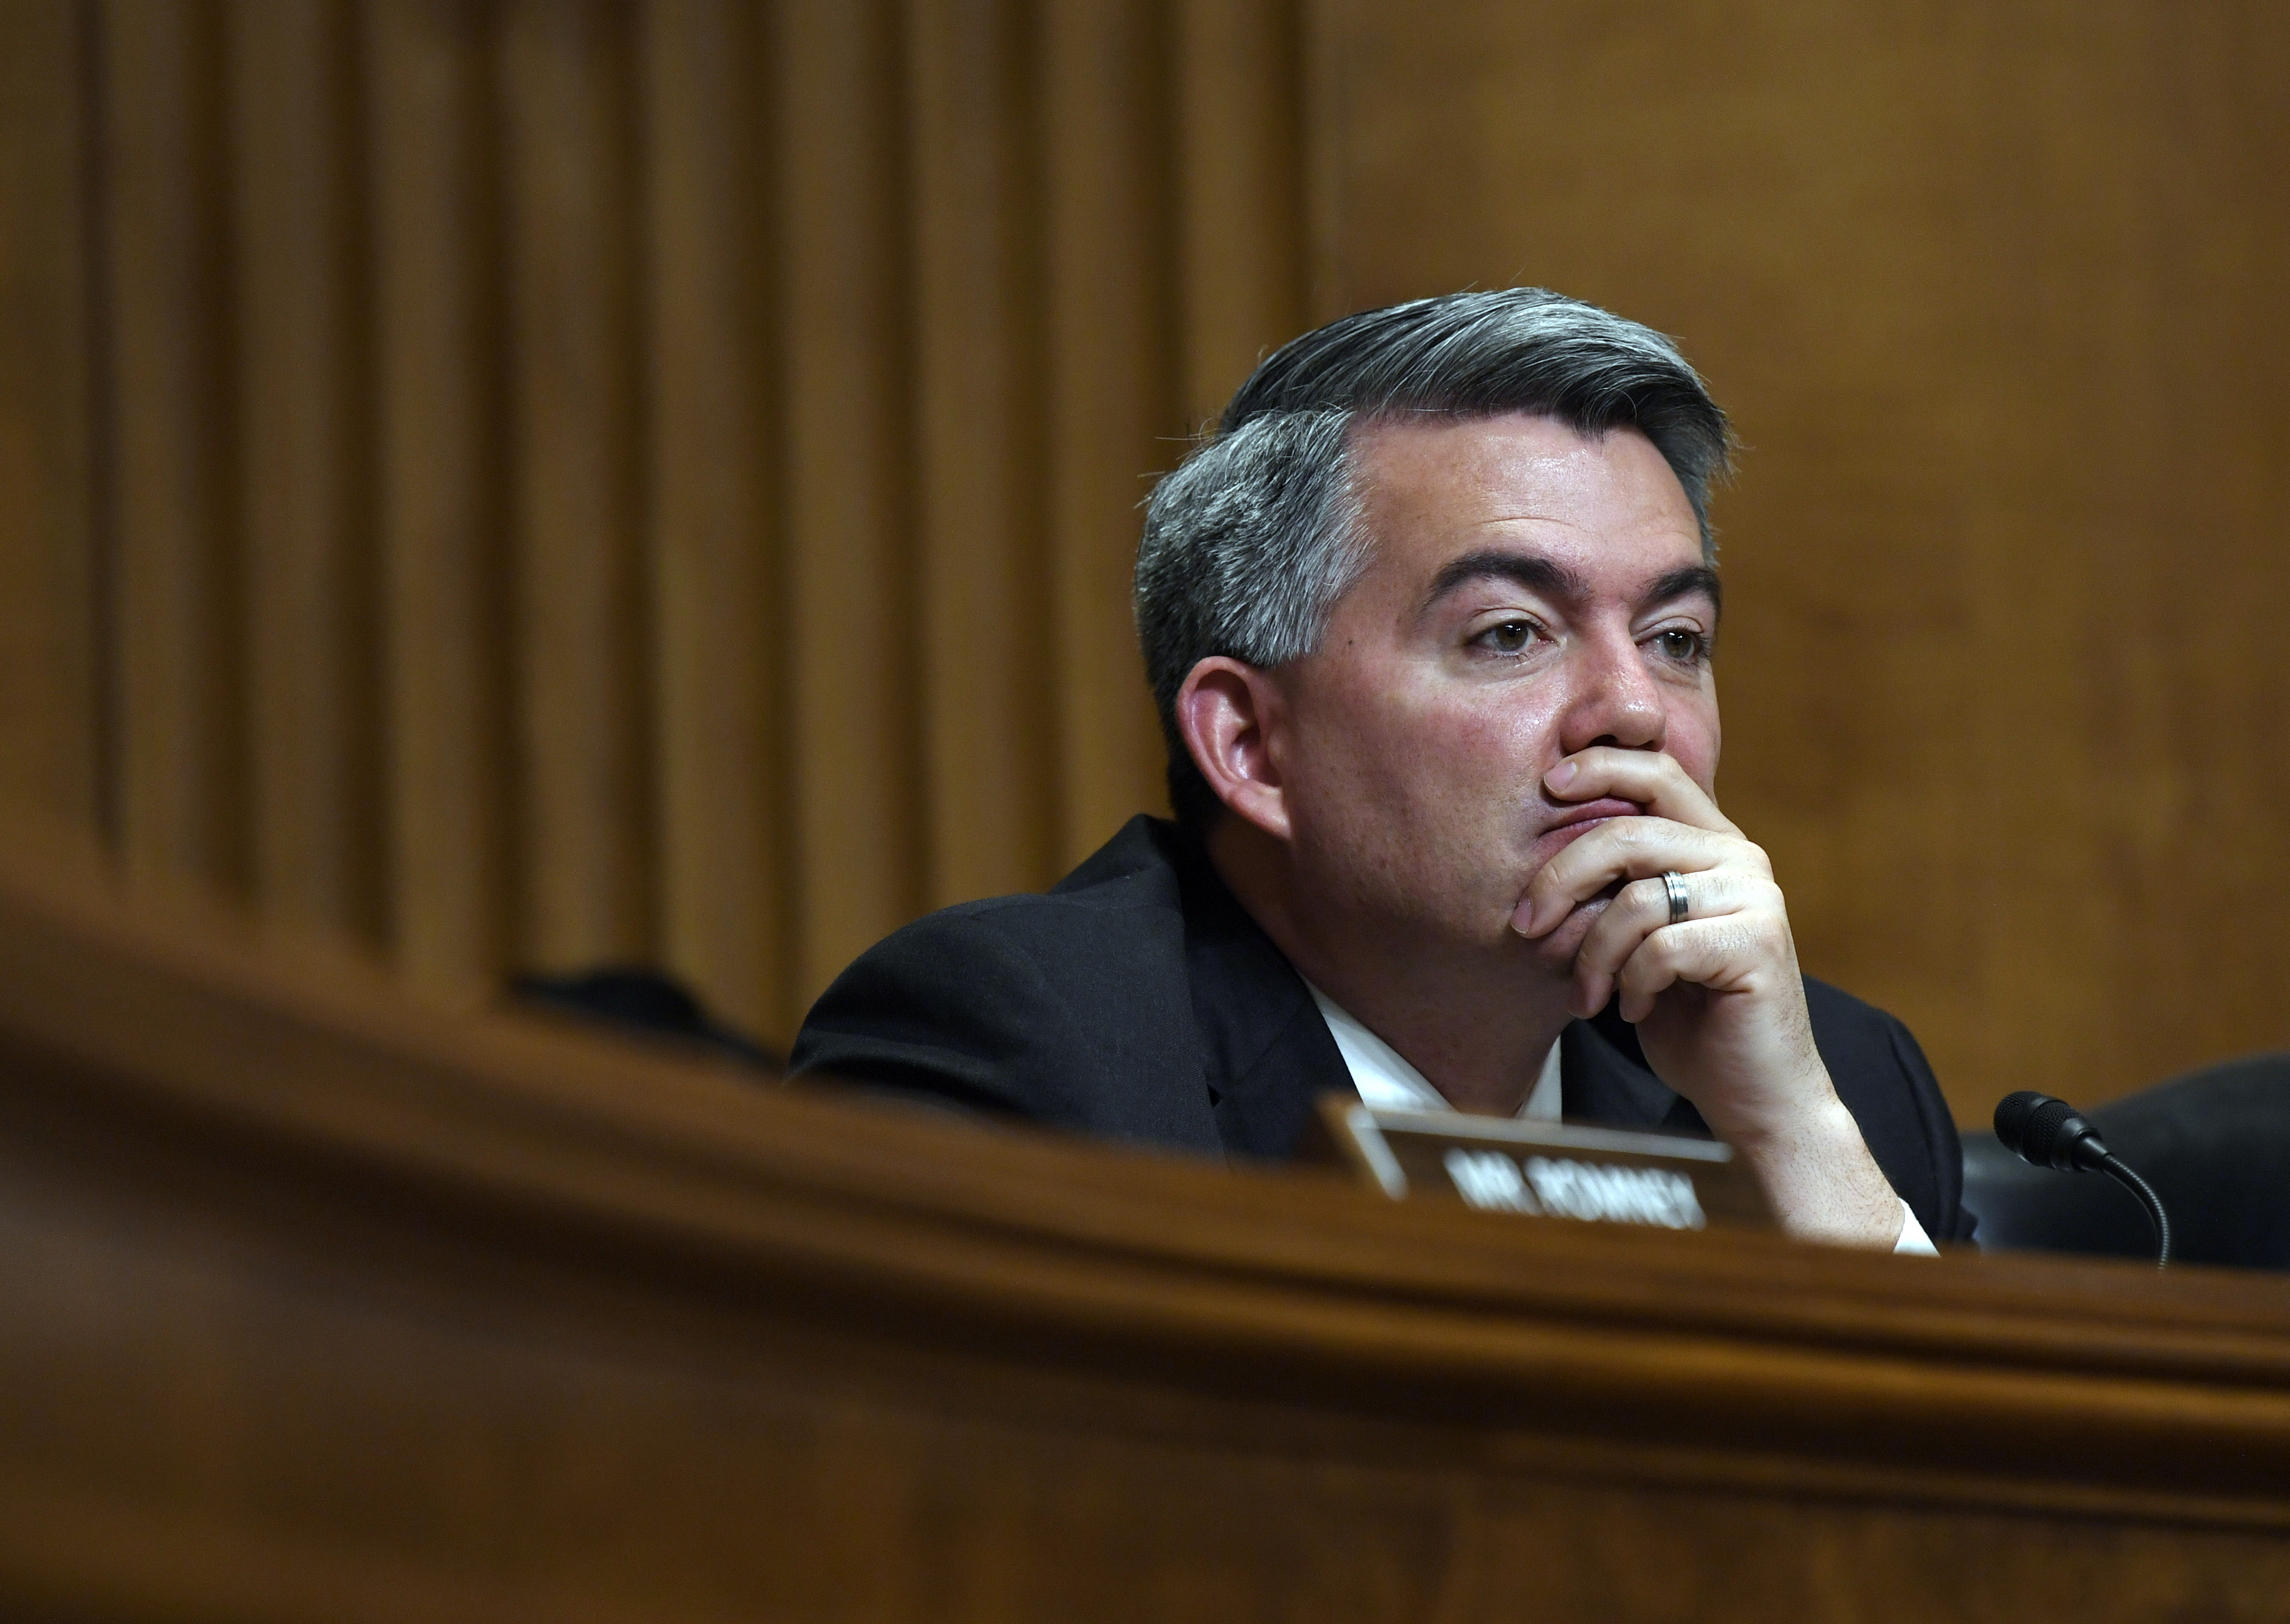 Gardner had good news for Colorado. But Trump had tweets